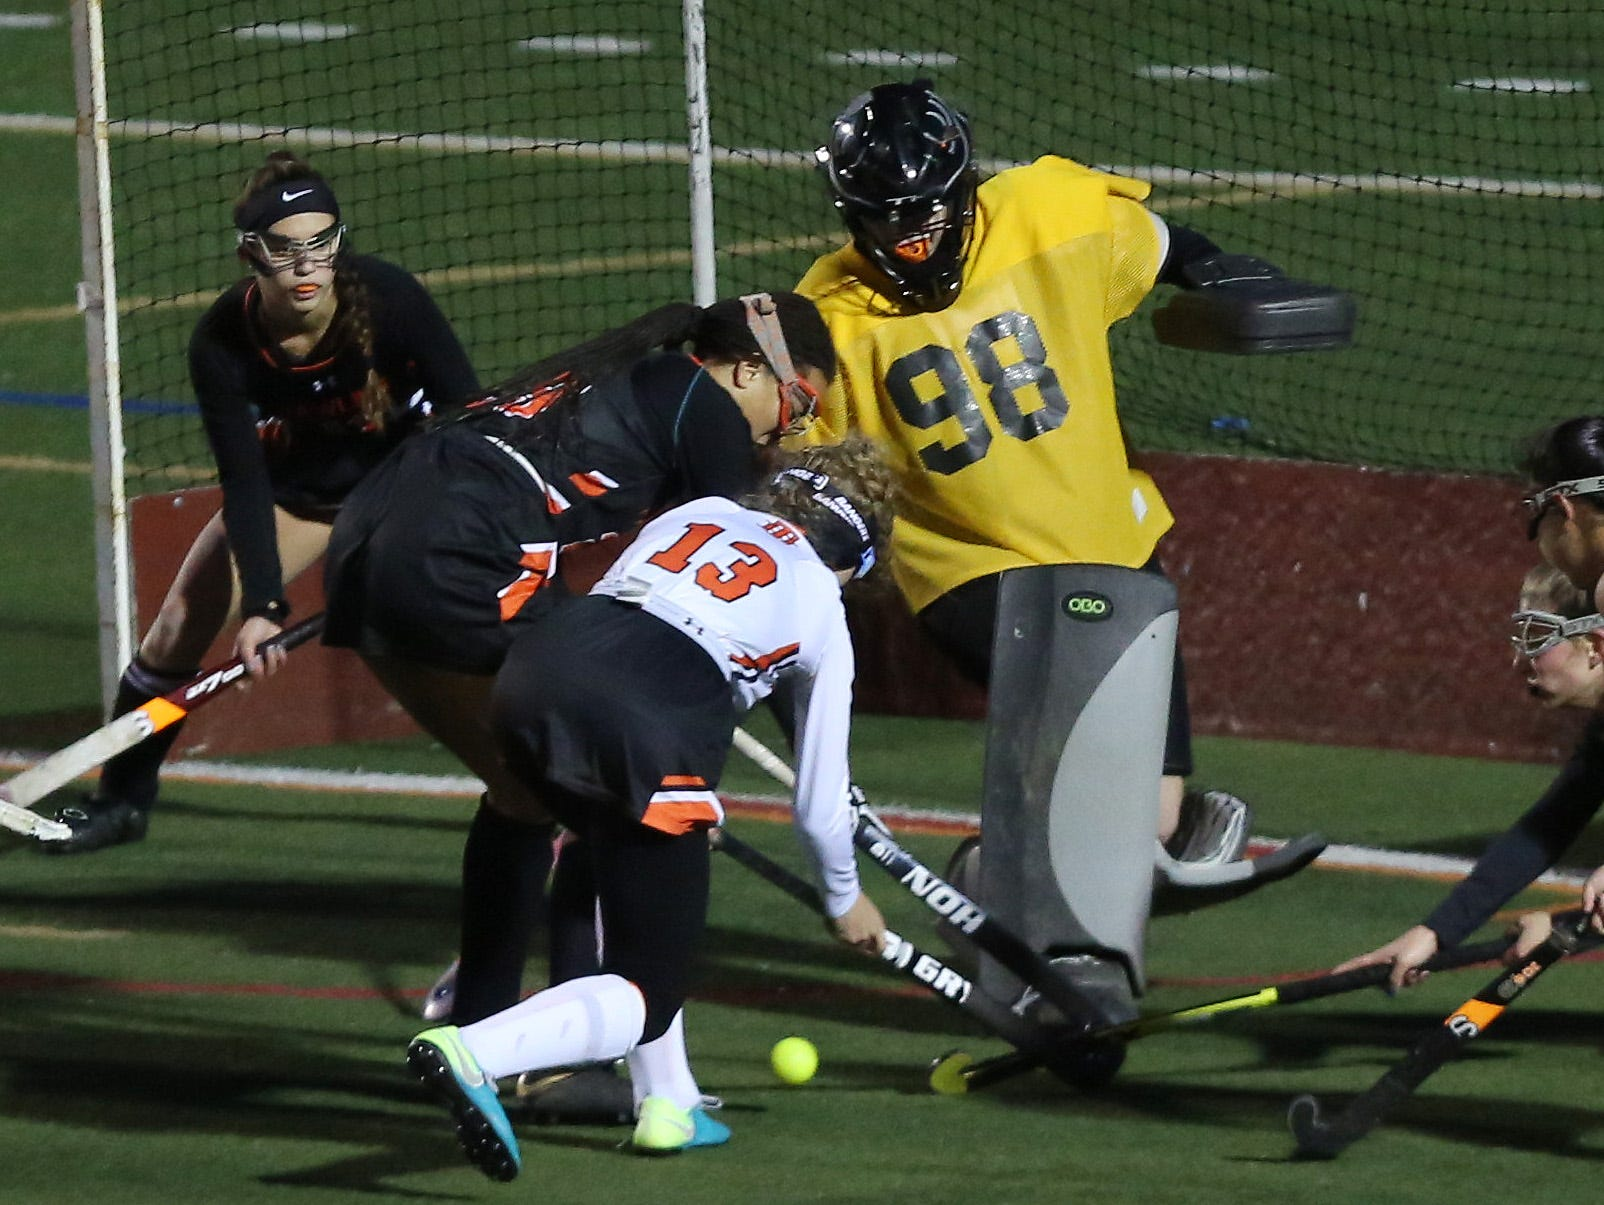 Pawling goal keeper Sara Corbi (98) stops a shot by Taconic Hills' Delana Bonci (12) during the Class C field hockey regional semifinal at Dietz Stadium in Kingston Oct. 30, 2018.